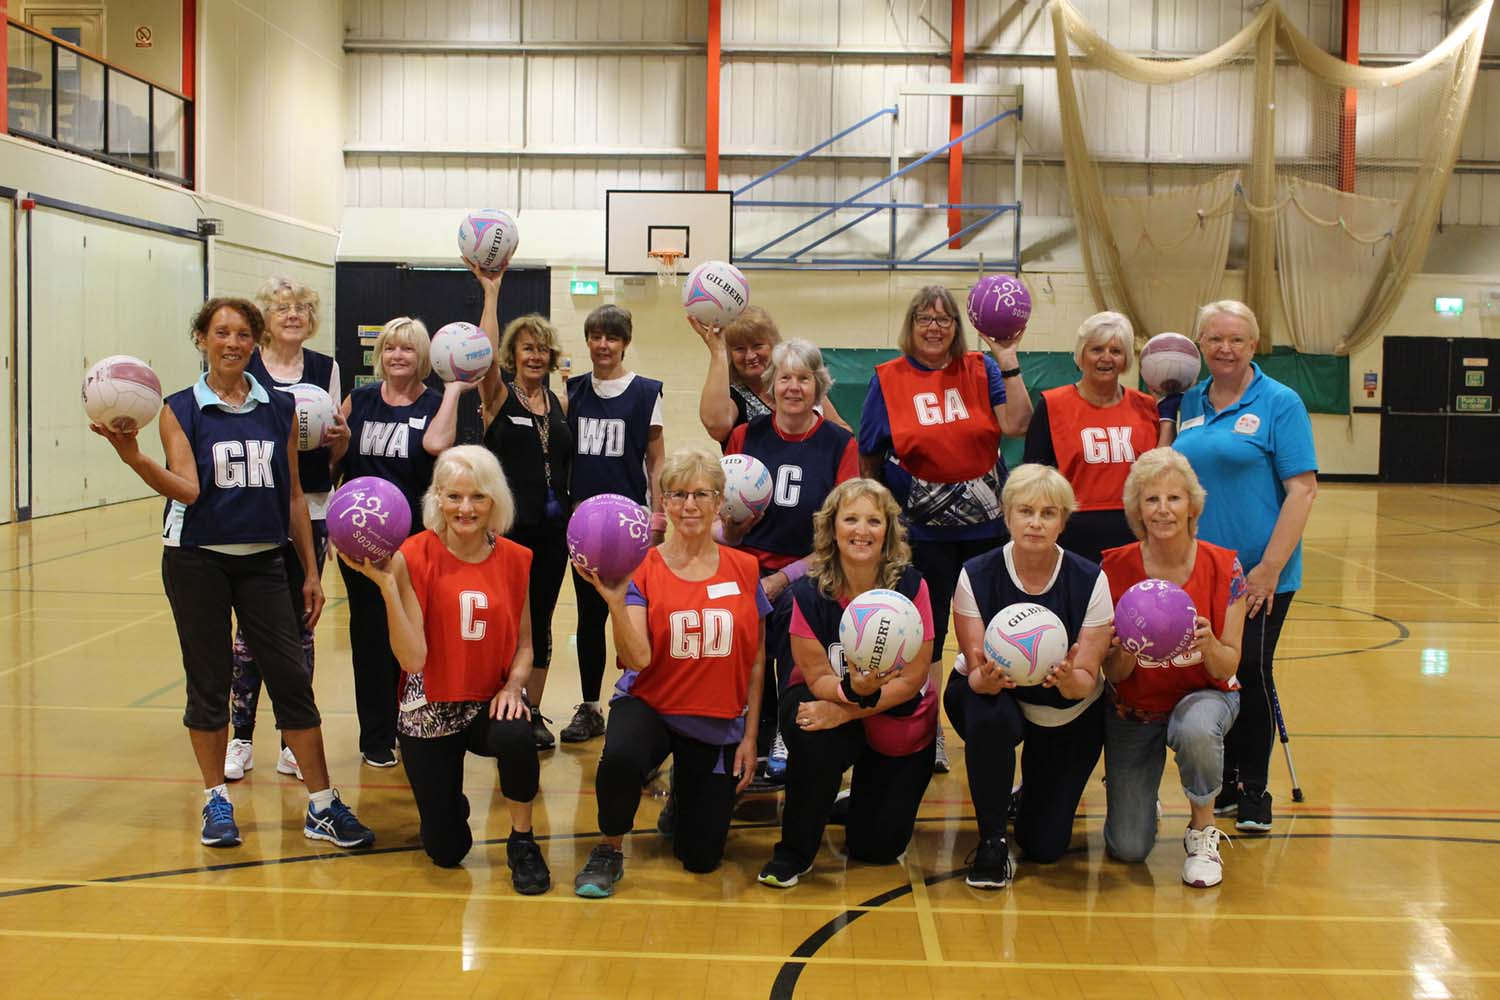 a team of walking netball players